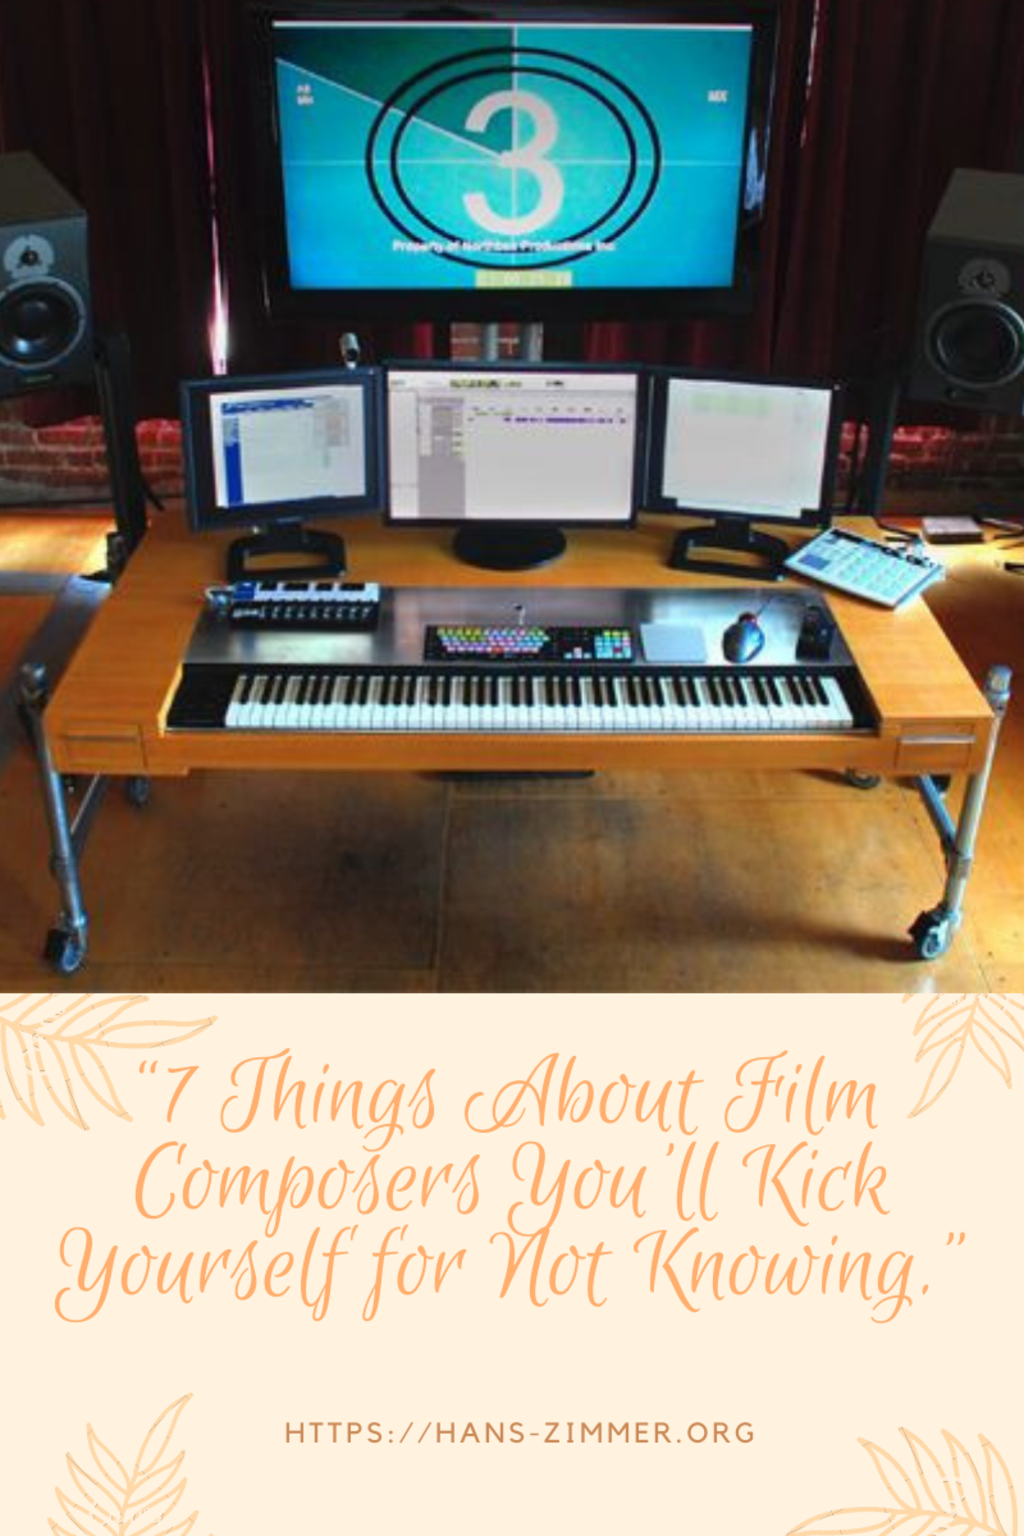 """""""7 Thinks About Film Composer You 'II kick Yourself for not knowing"""""""